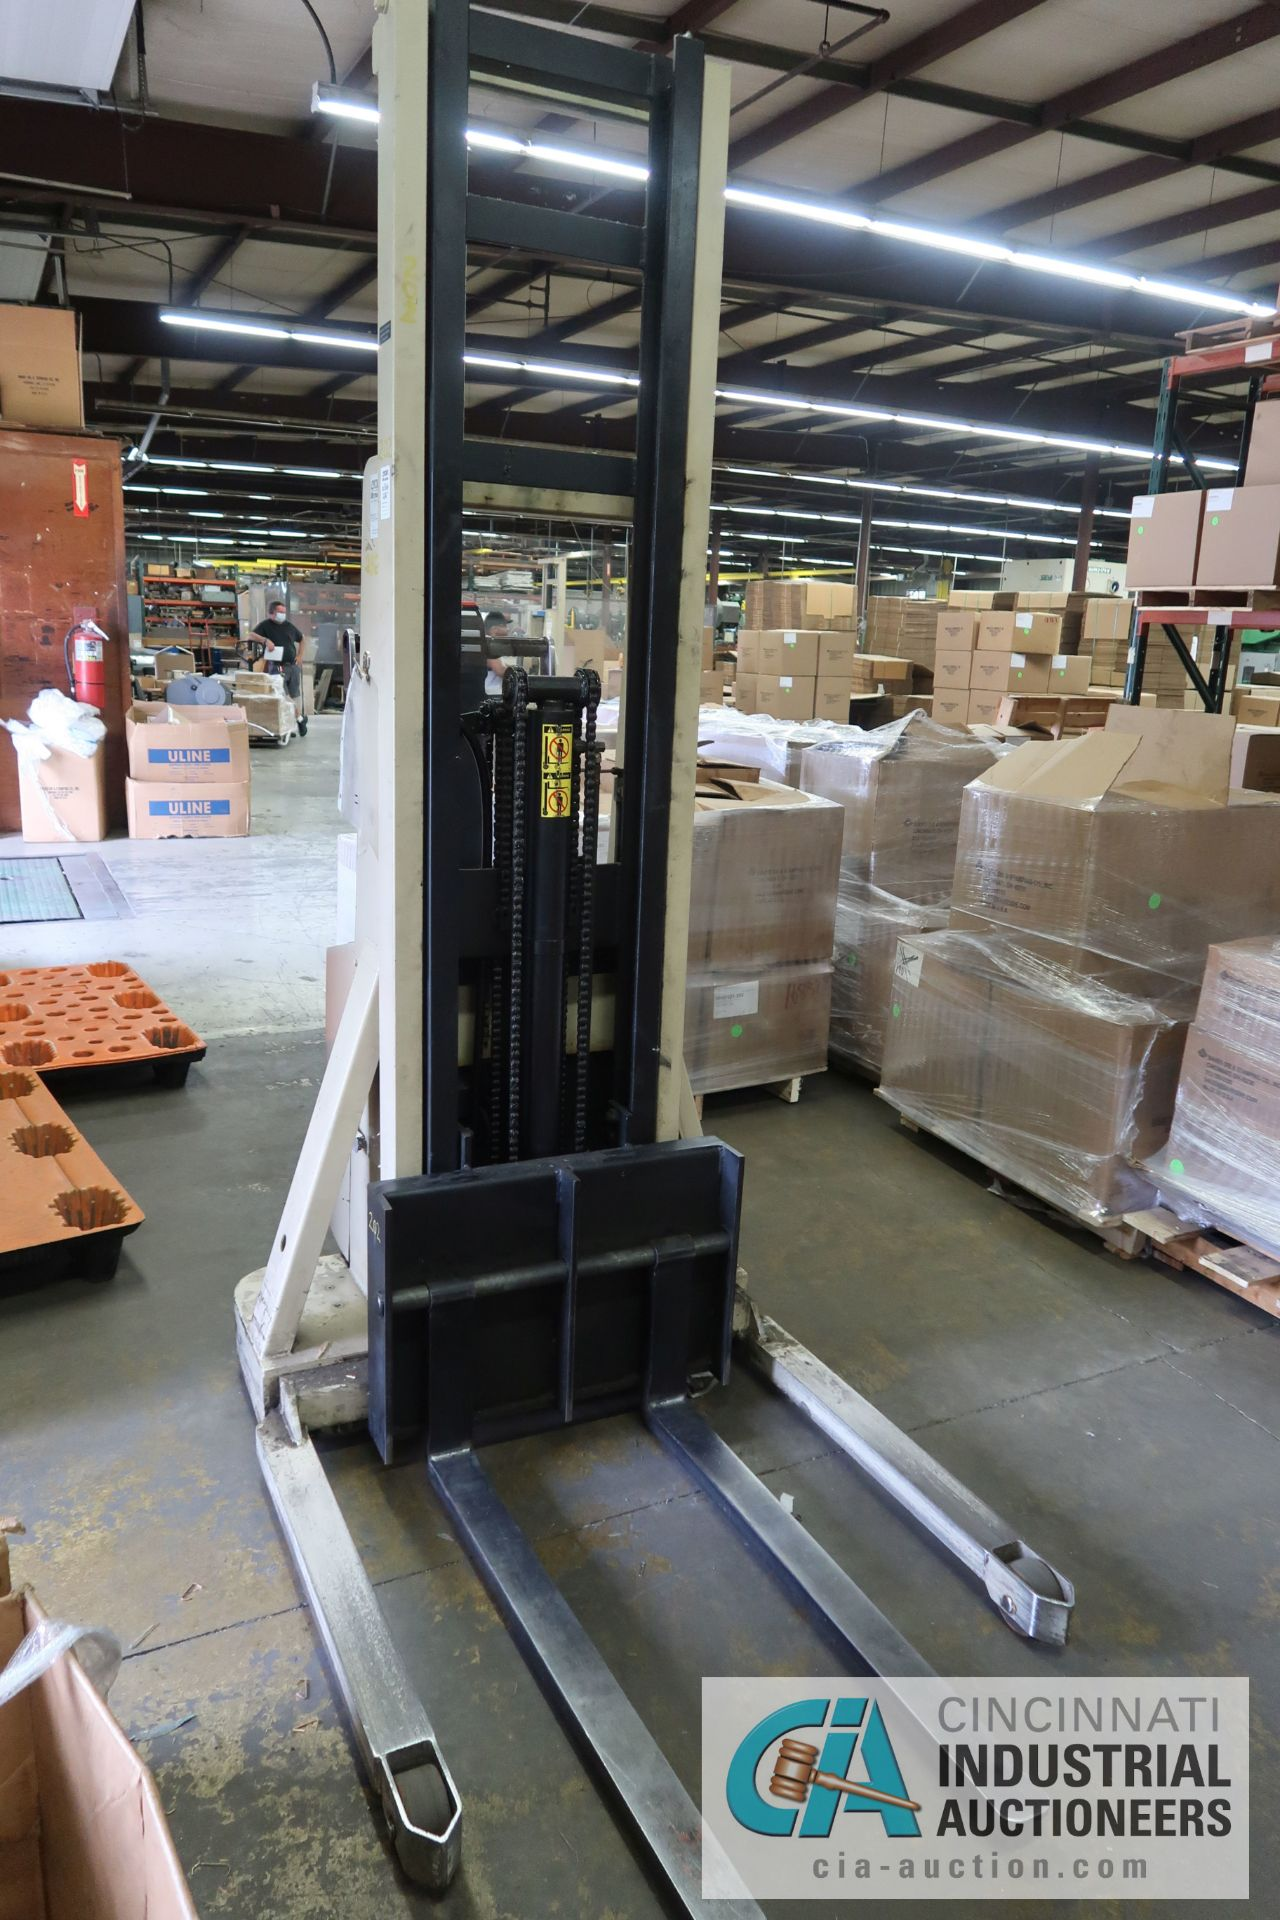 2,000 LB. CAPACITY CROWN MODEL 20MT ELECTRIC WALK BEHIND ELECTRIC STACKER; S/N 1A132307, 24 VOLT, - Image 3 of 5